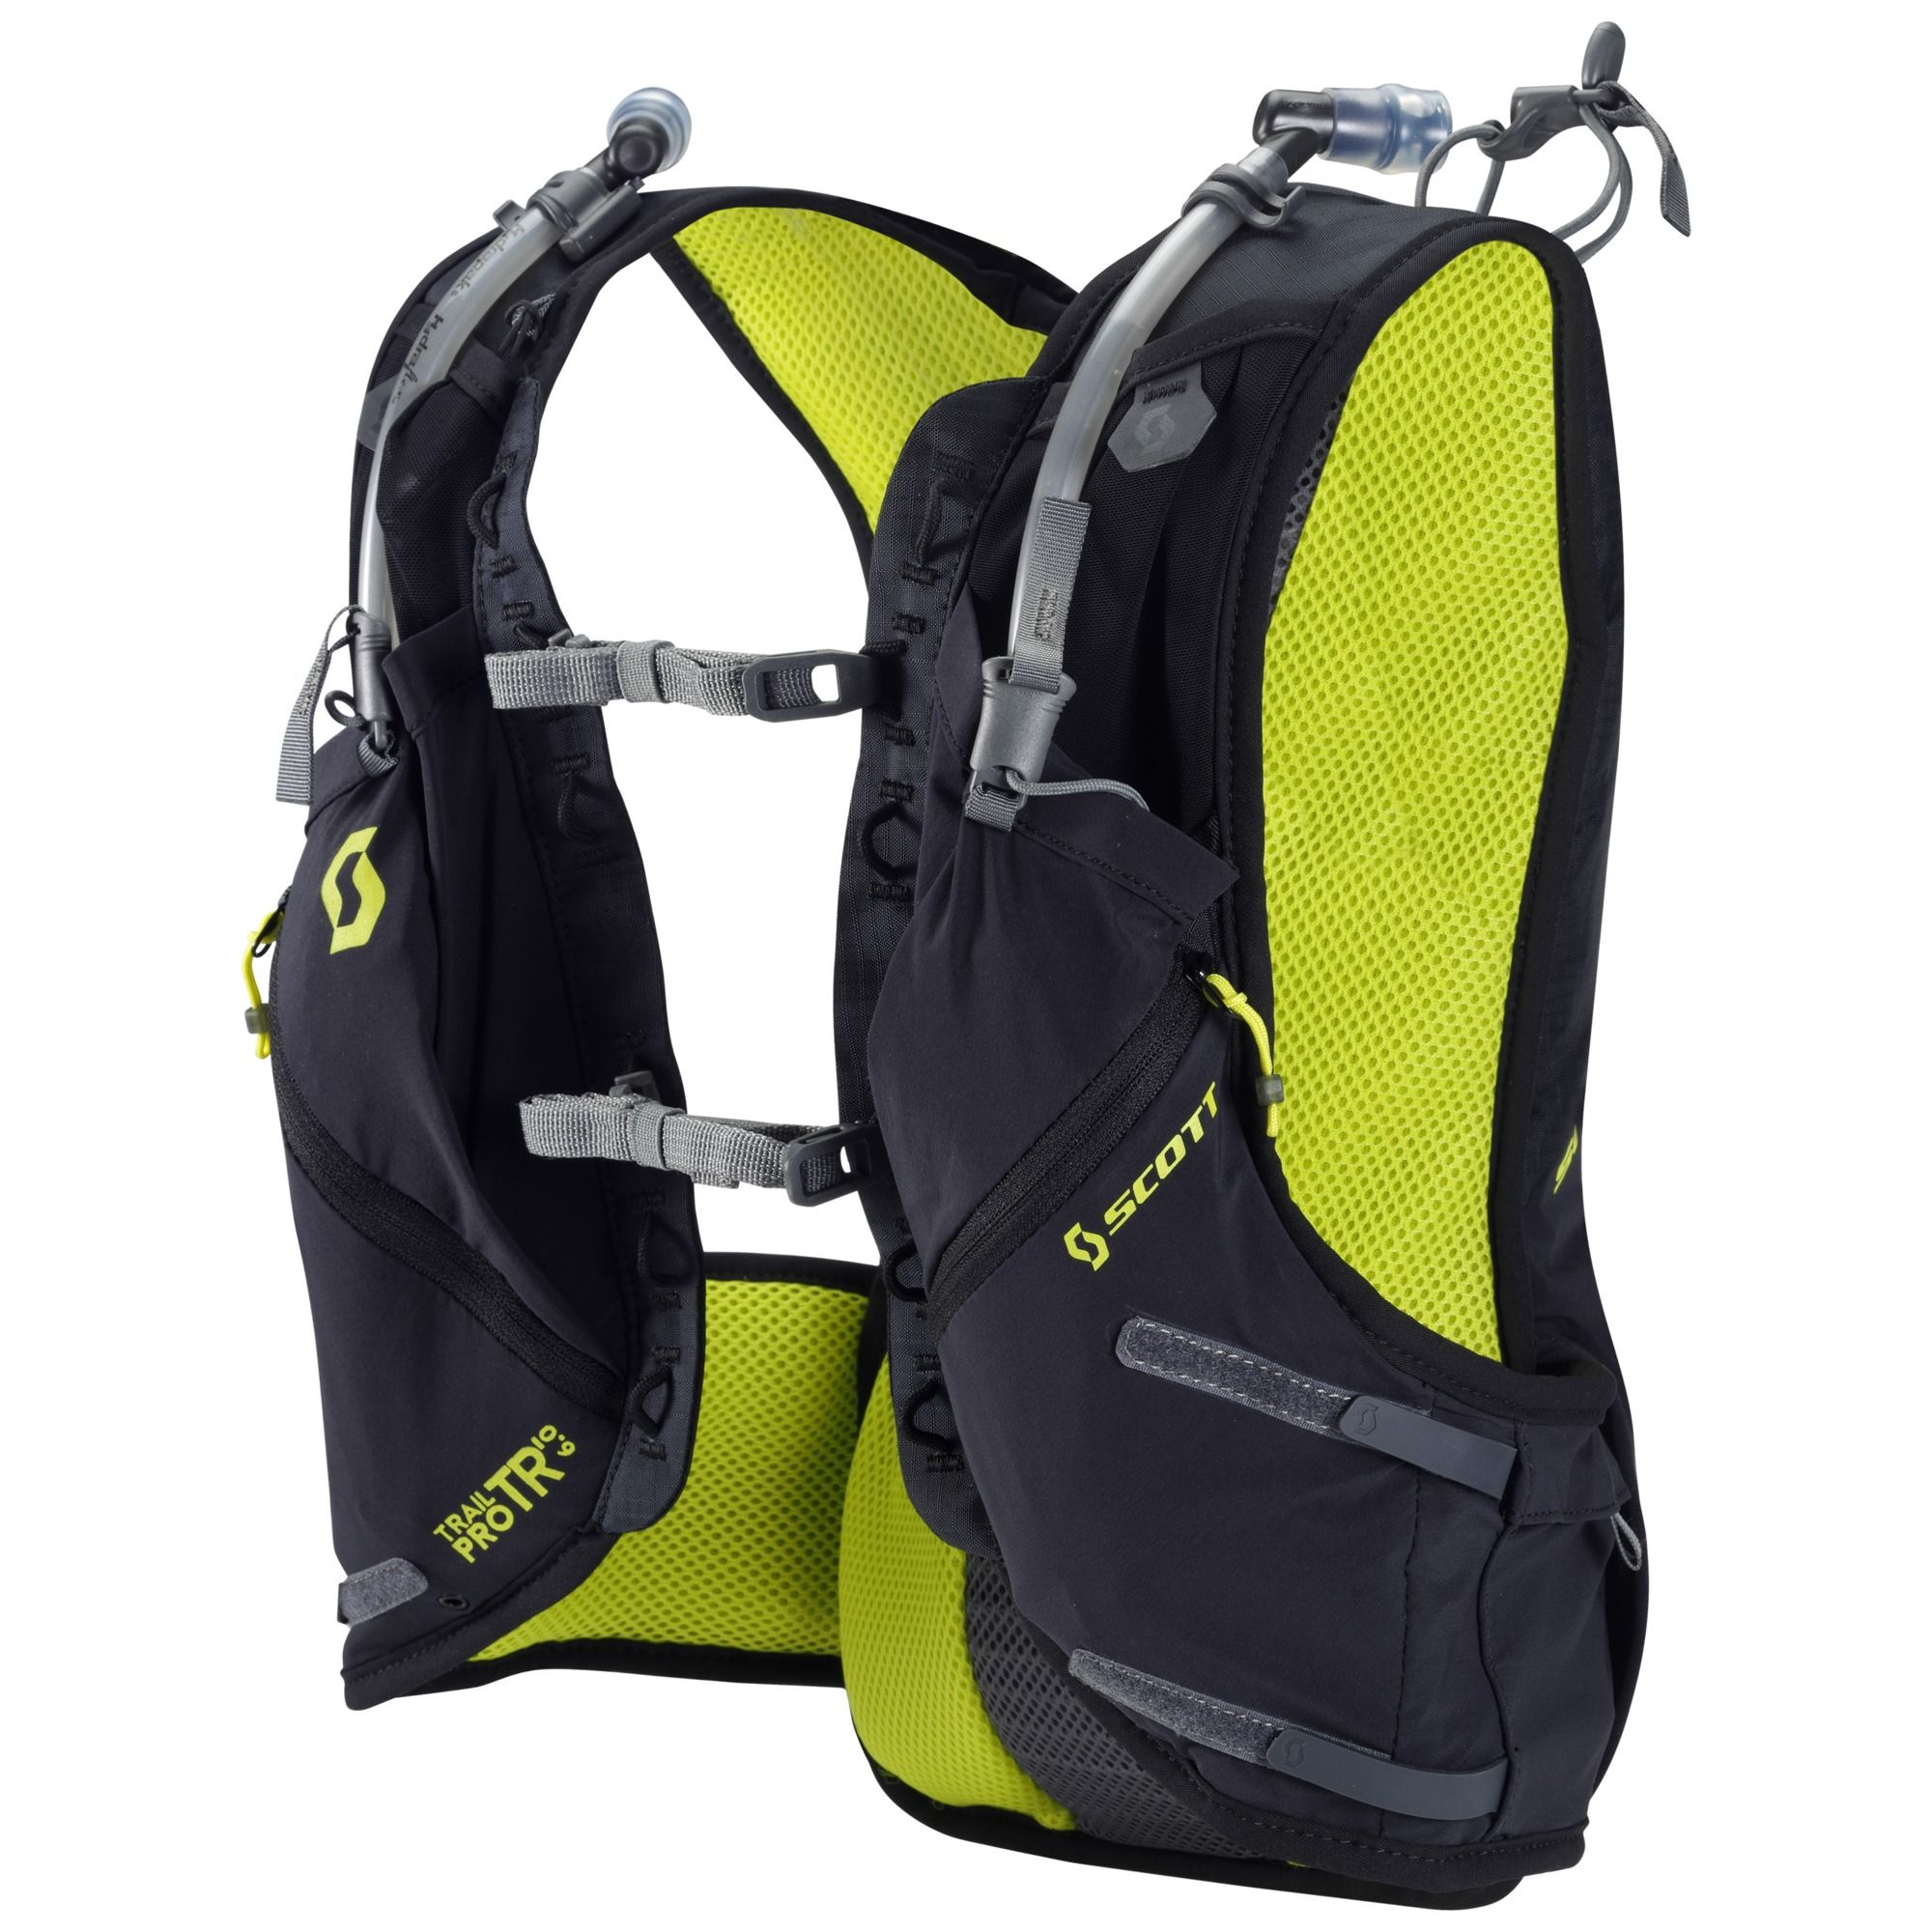 The SCOTT Trail Pack Pro is the ideal pack for fast and